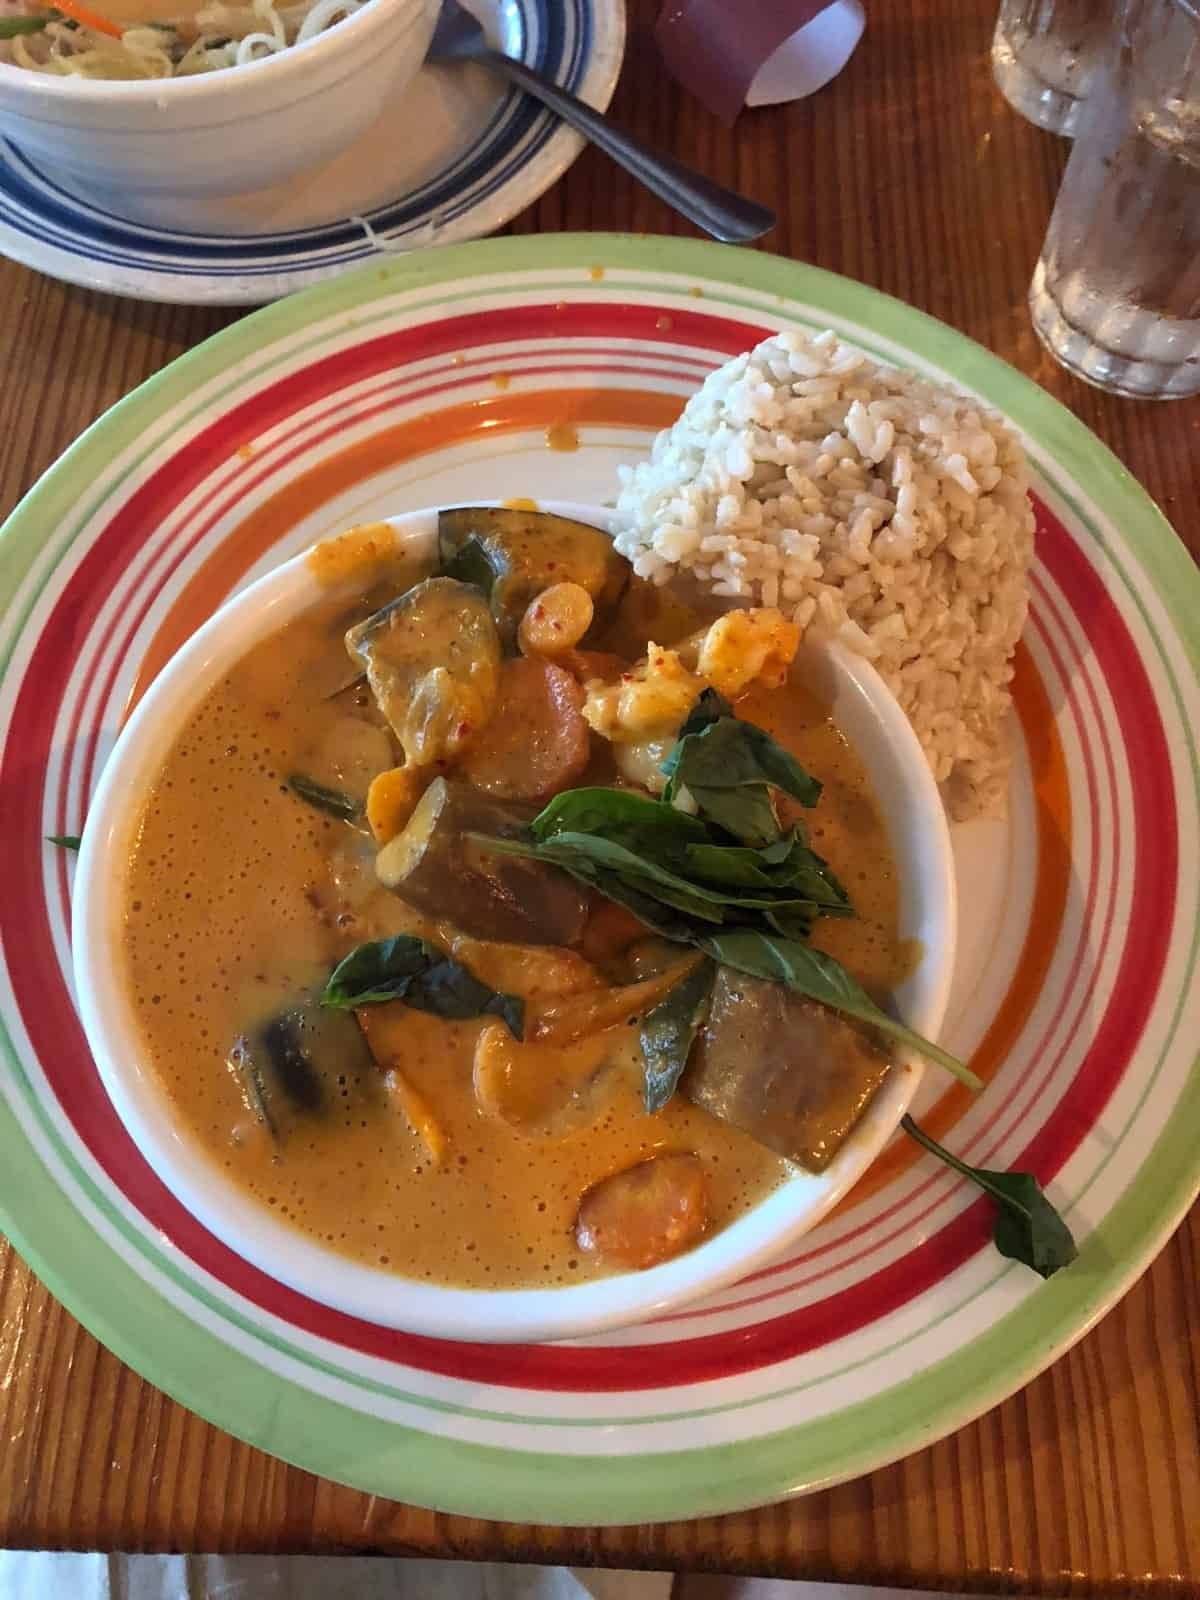 Red curry with vegetables and rice on the side